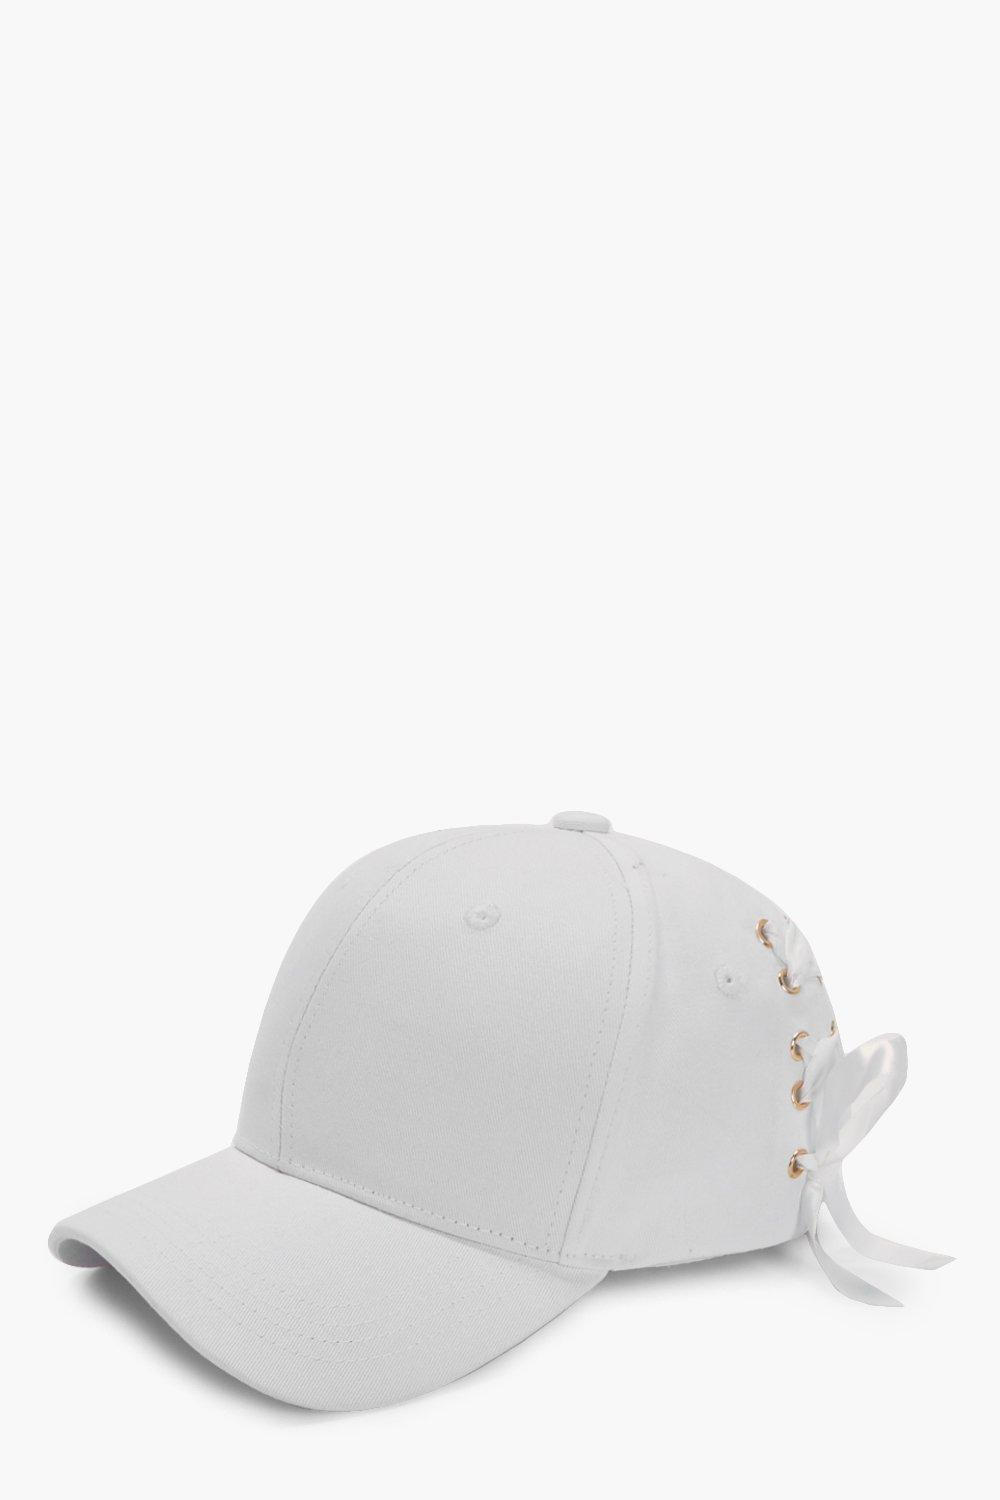 Lace Up Corset Baseball Cap - white - Jenna Lace U